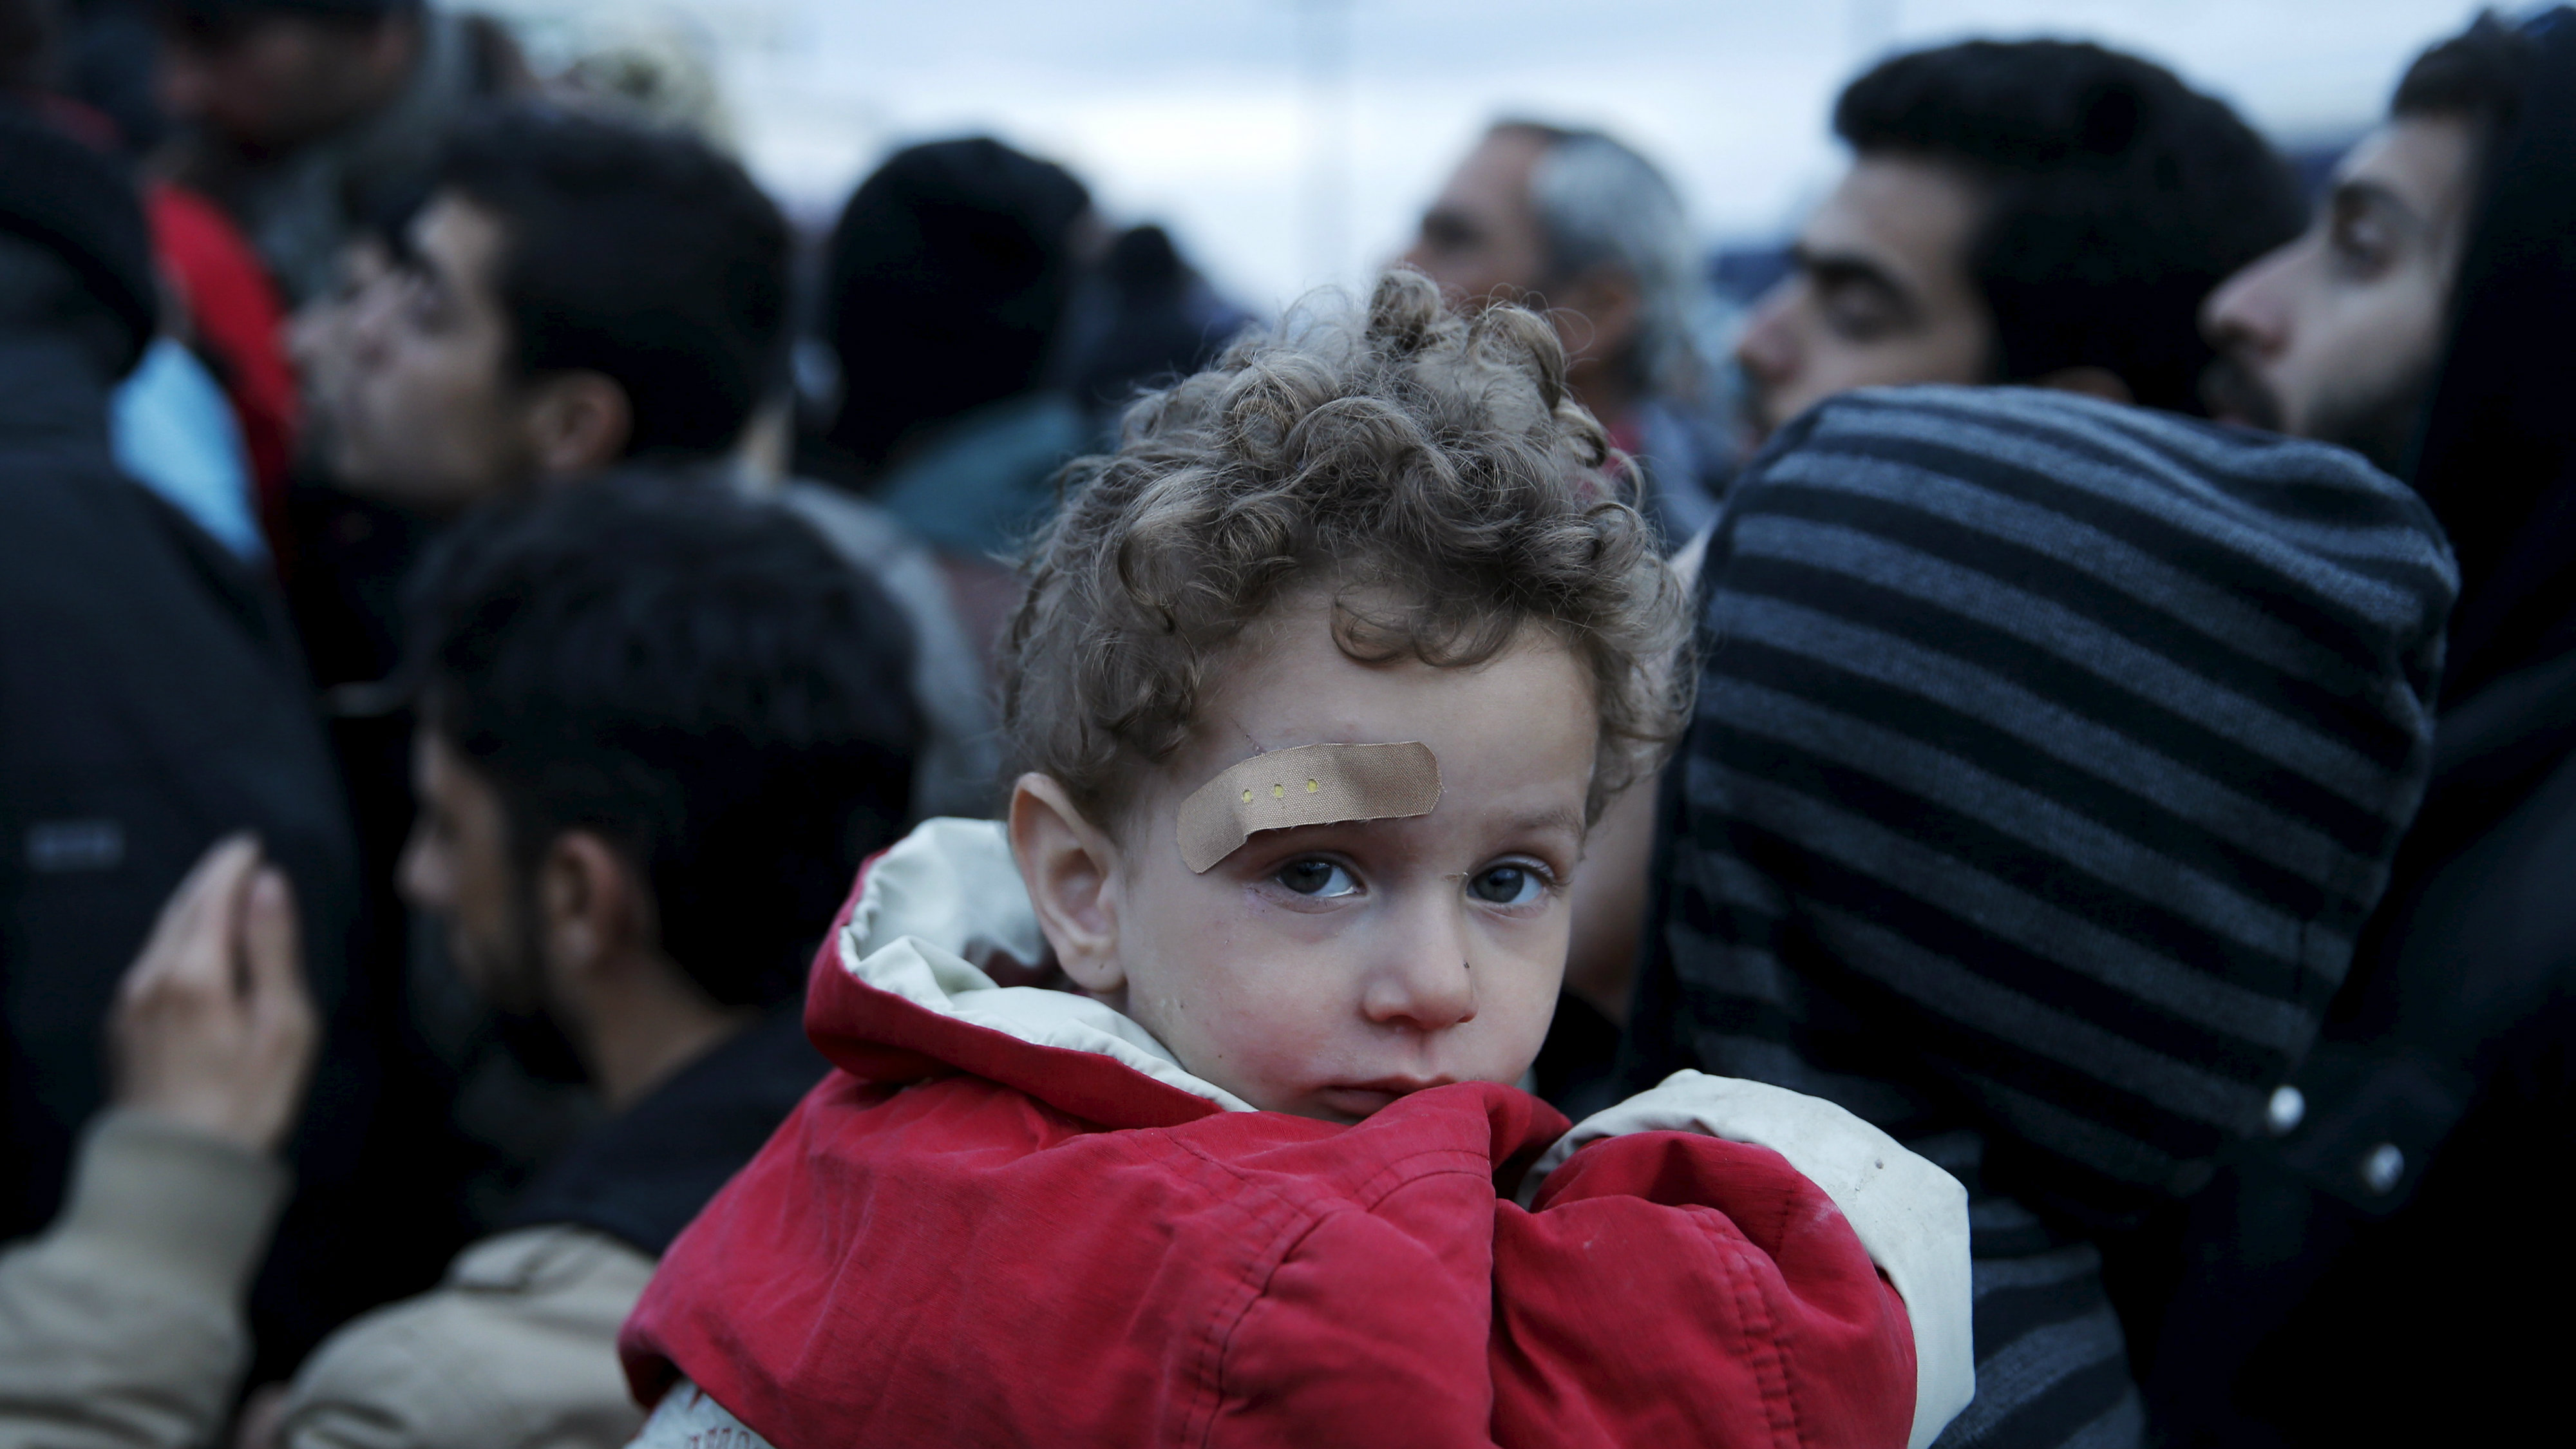 Michel Foucault saw Europe's current refugee crisis coming 40 years ago